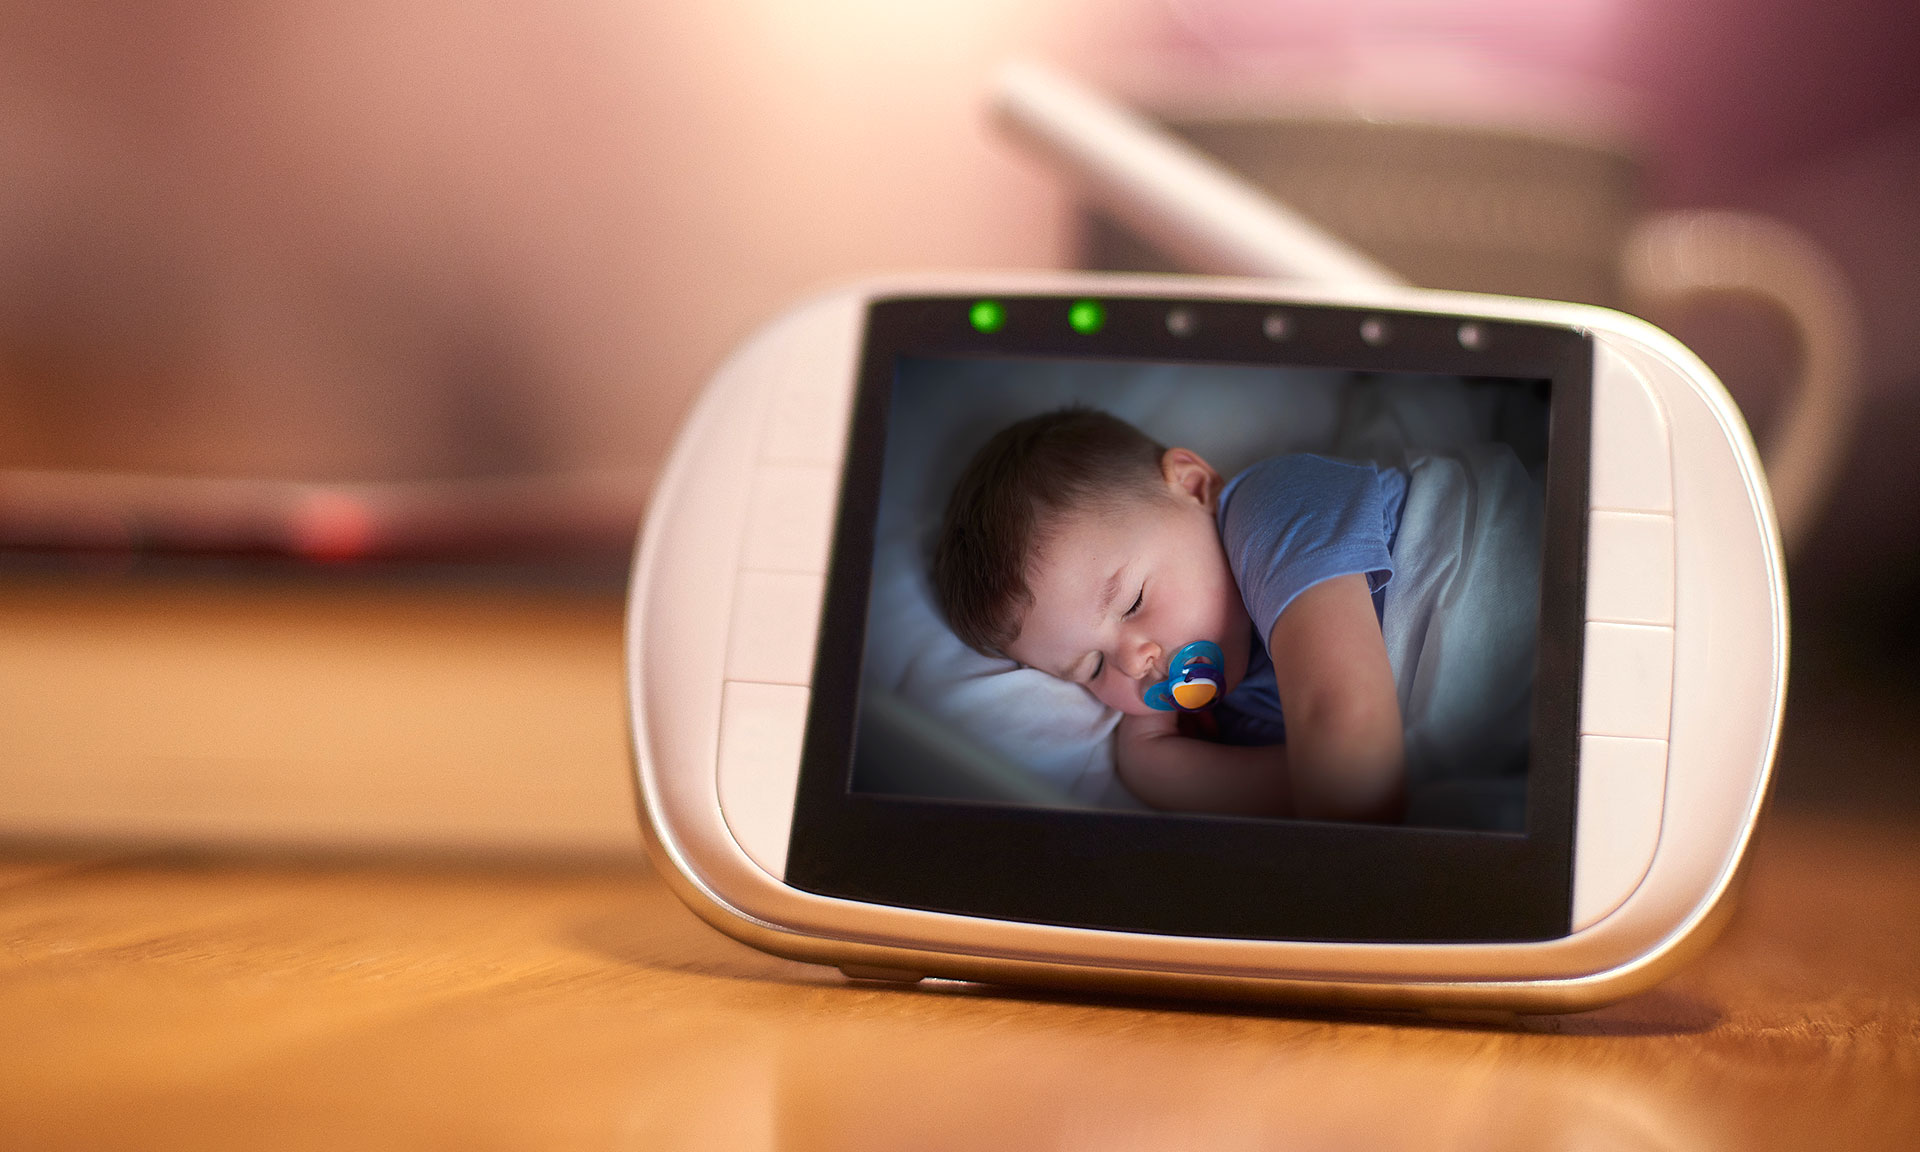 new baby monitor reviews reveal stark contrast between. Black Bedroom Furniture Sets. Home Design Ideas